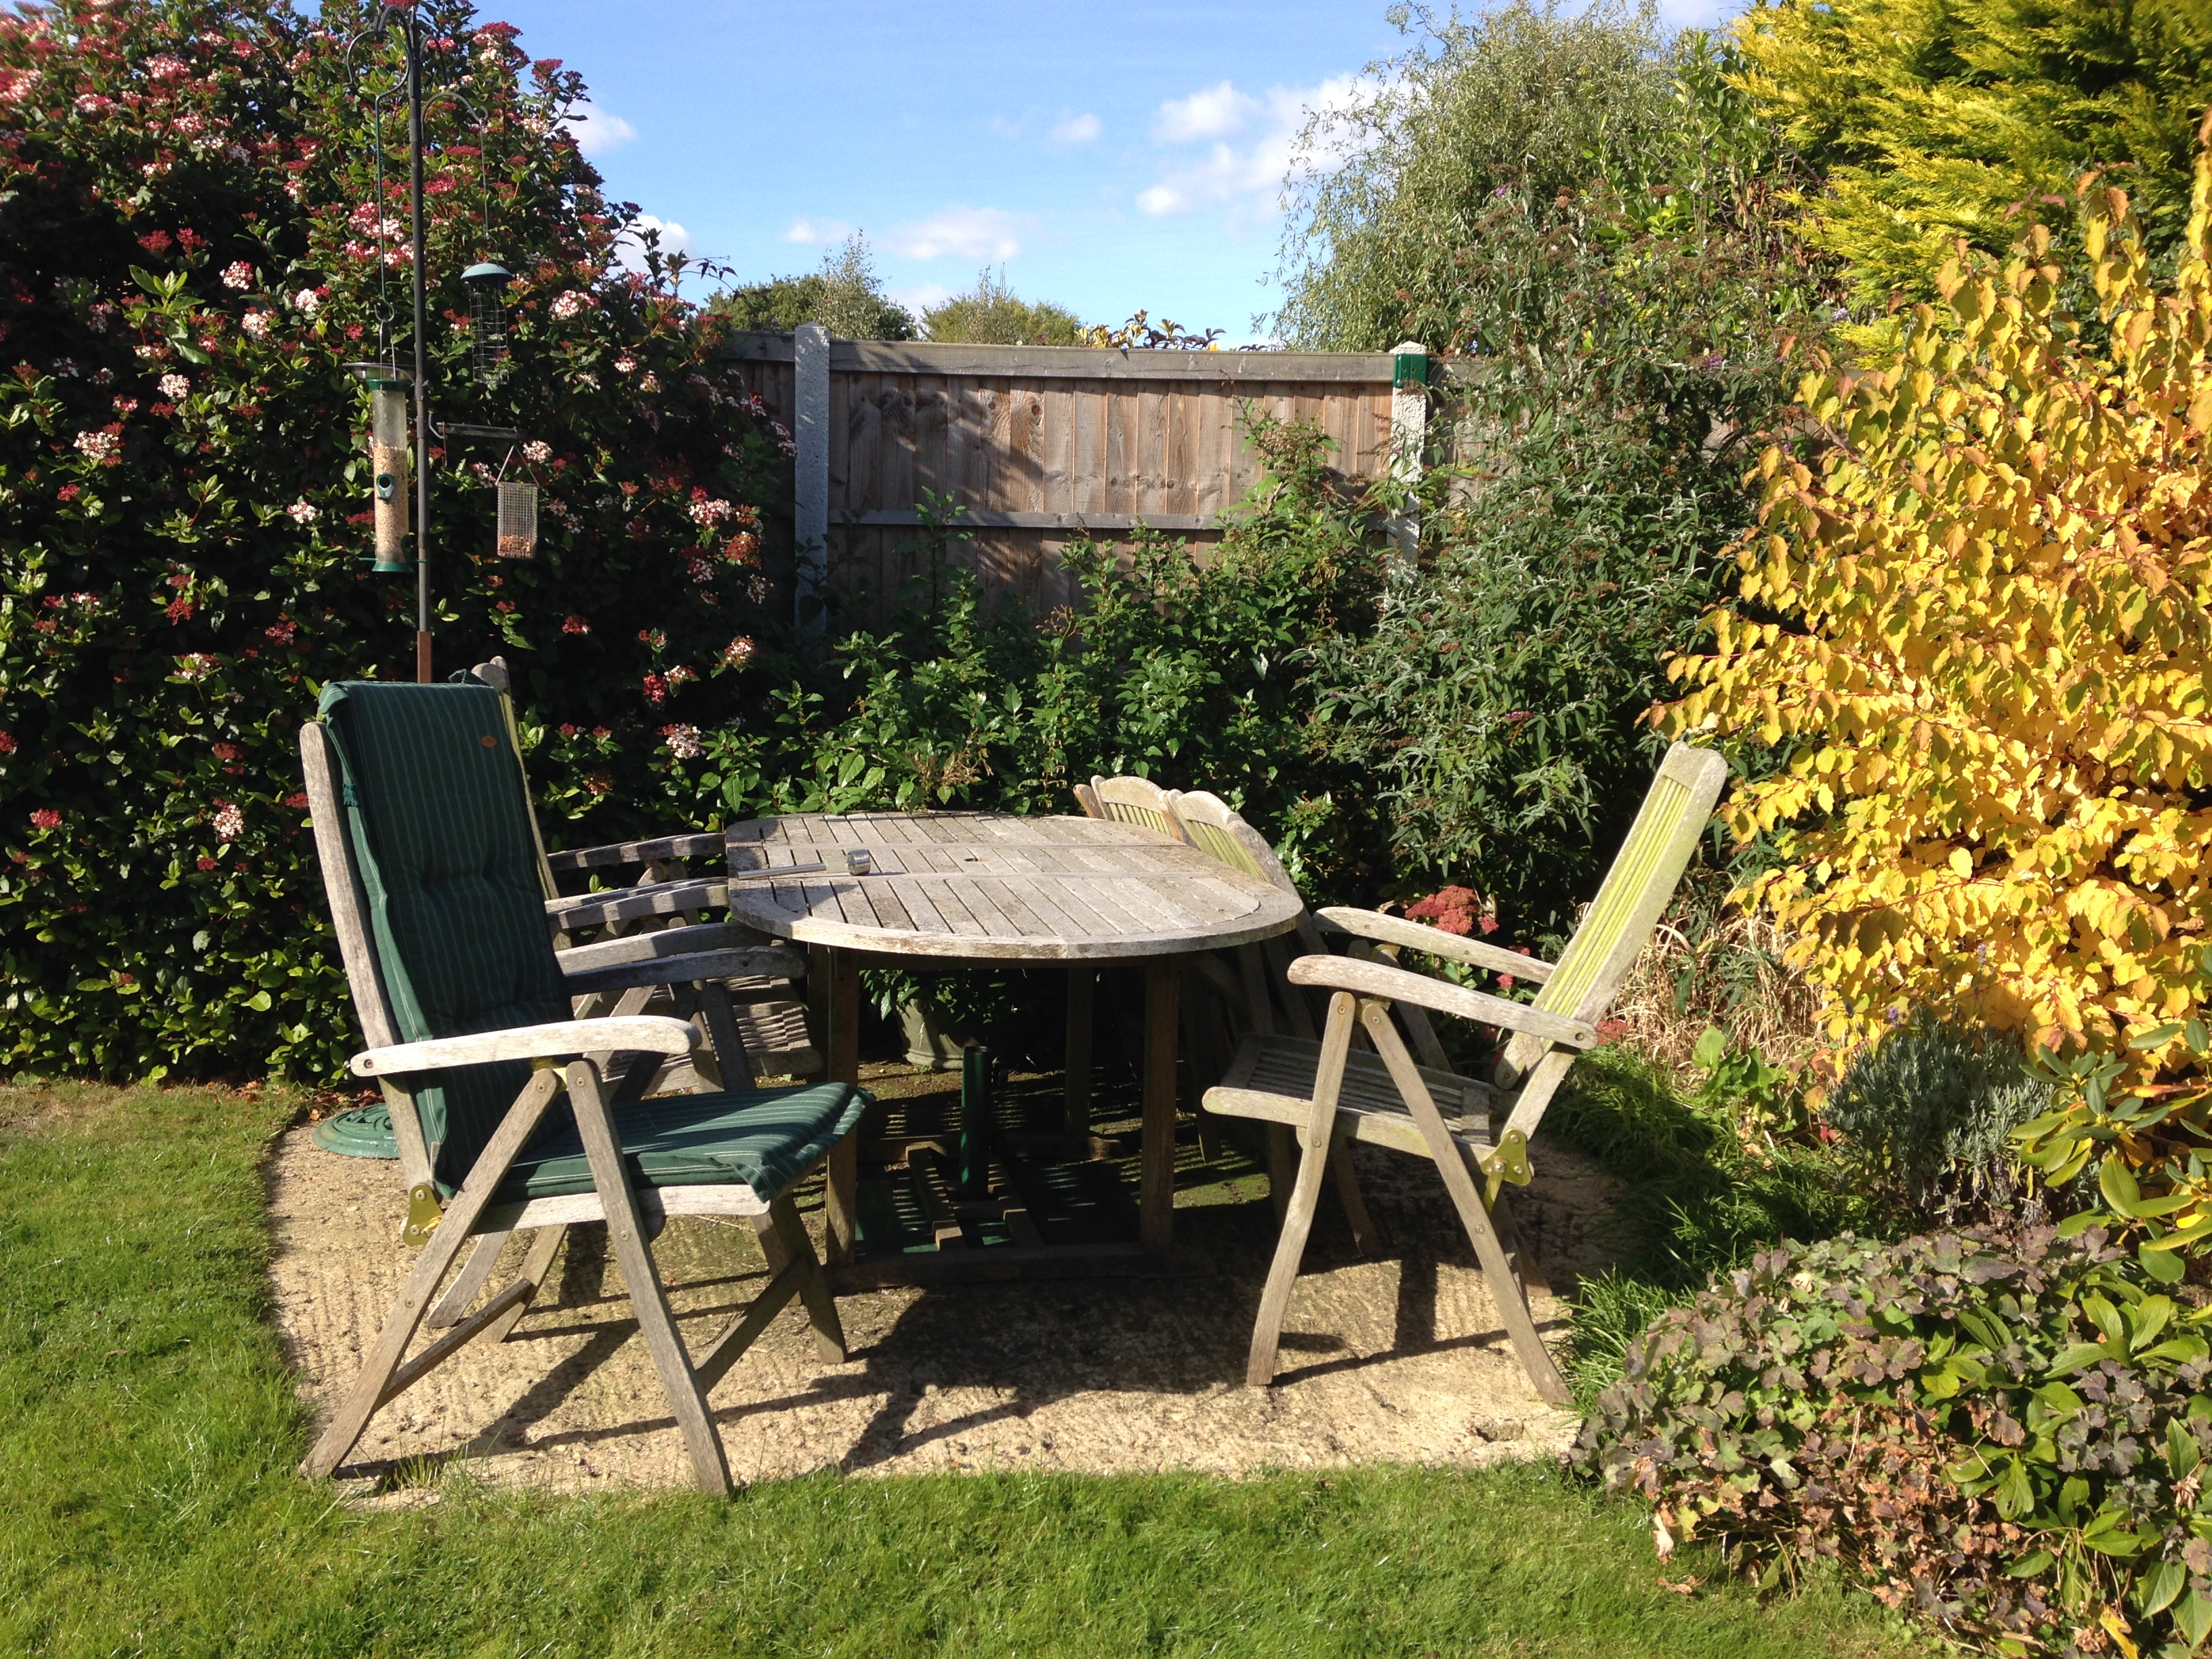 For sale: Hardwood extendible garden table with six recliner chairs with cushions